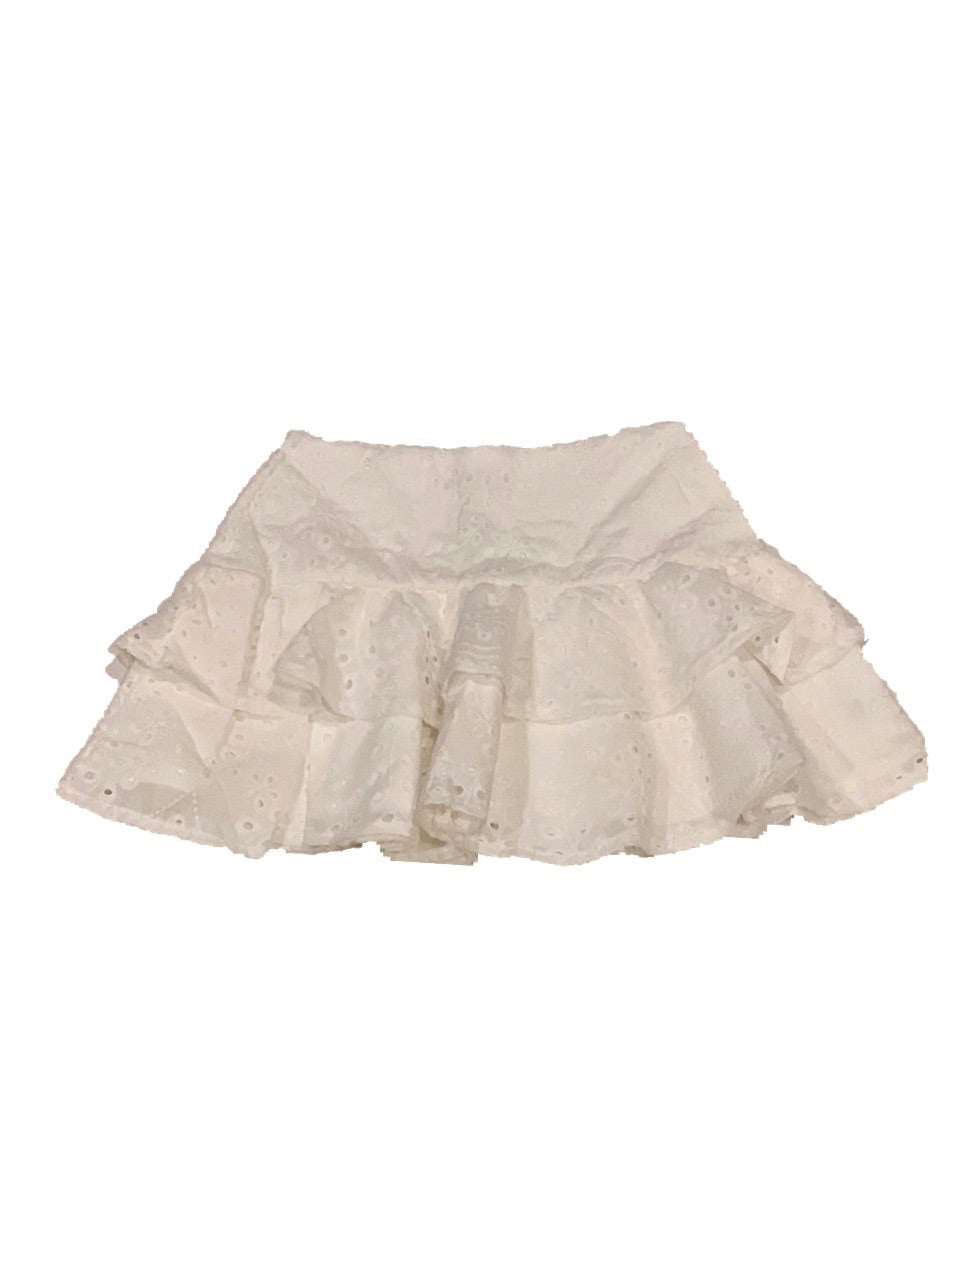 KatieJ White Tiered Eyelet Skirt